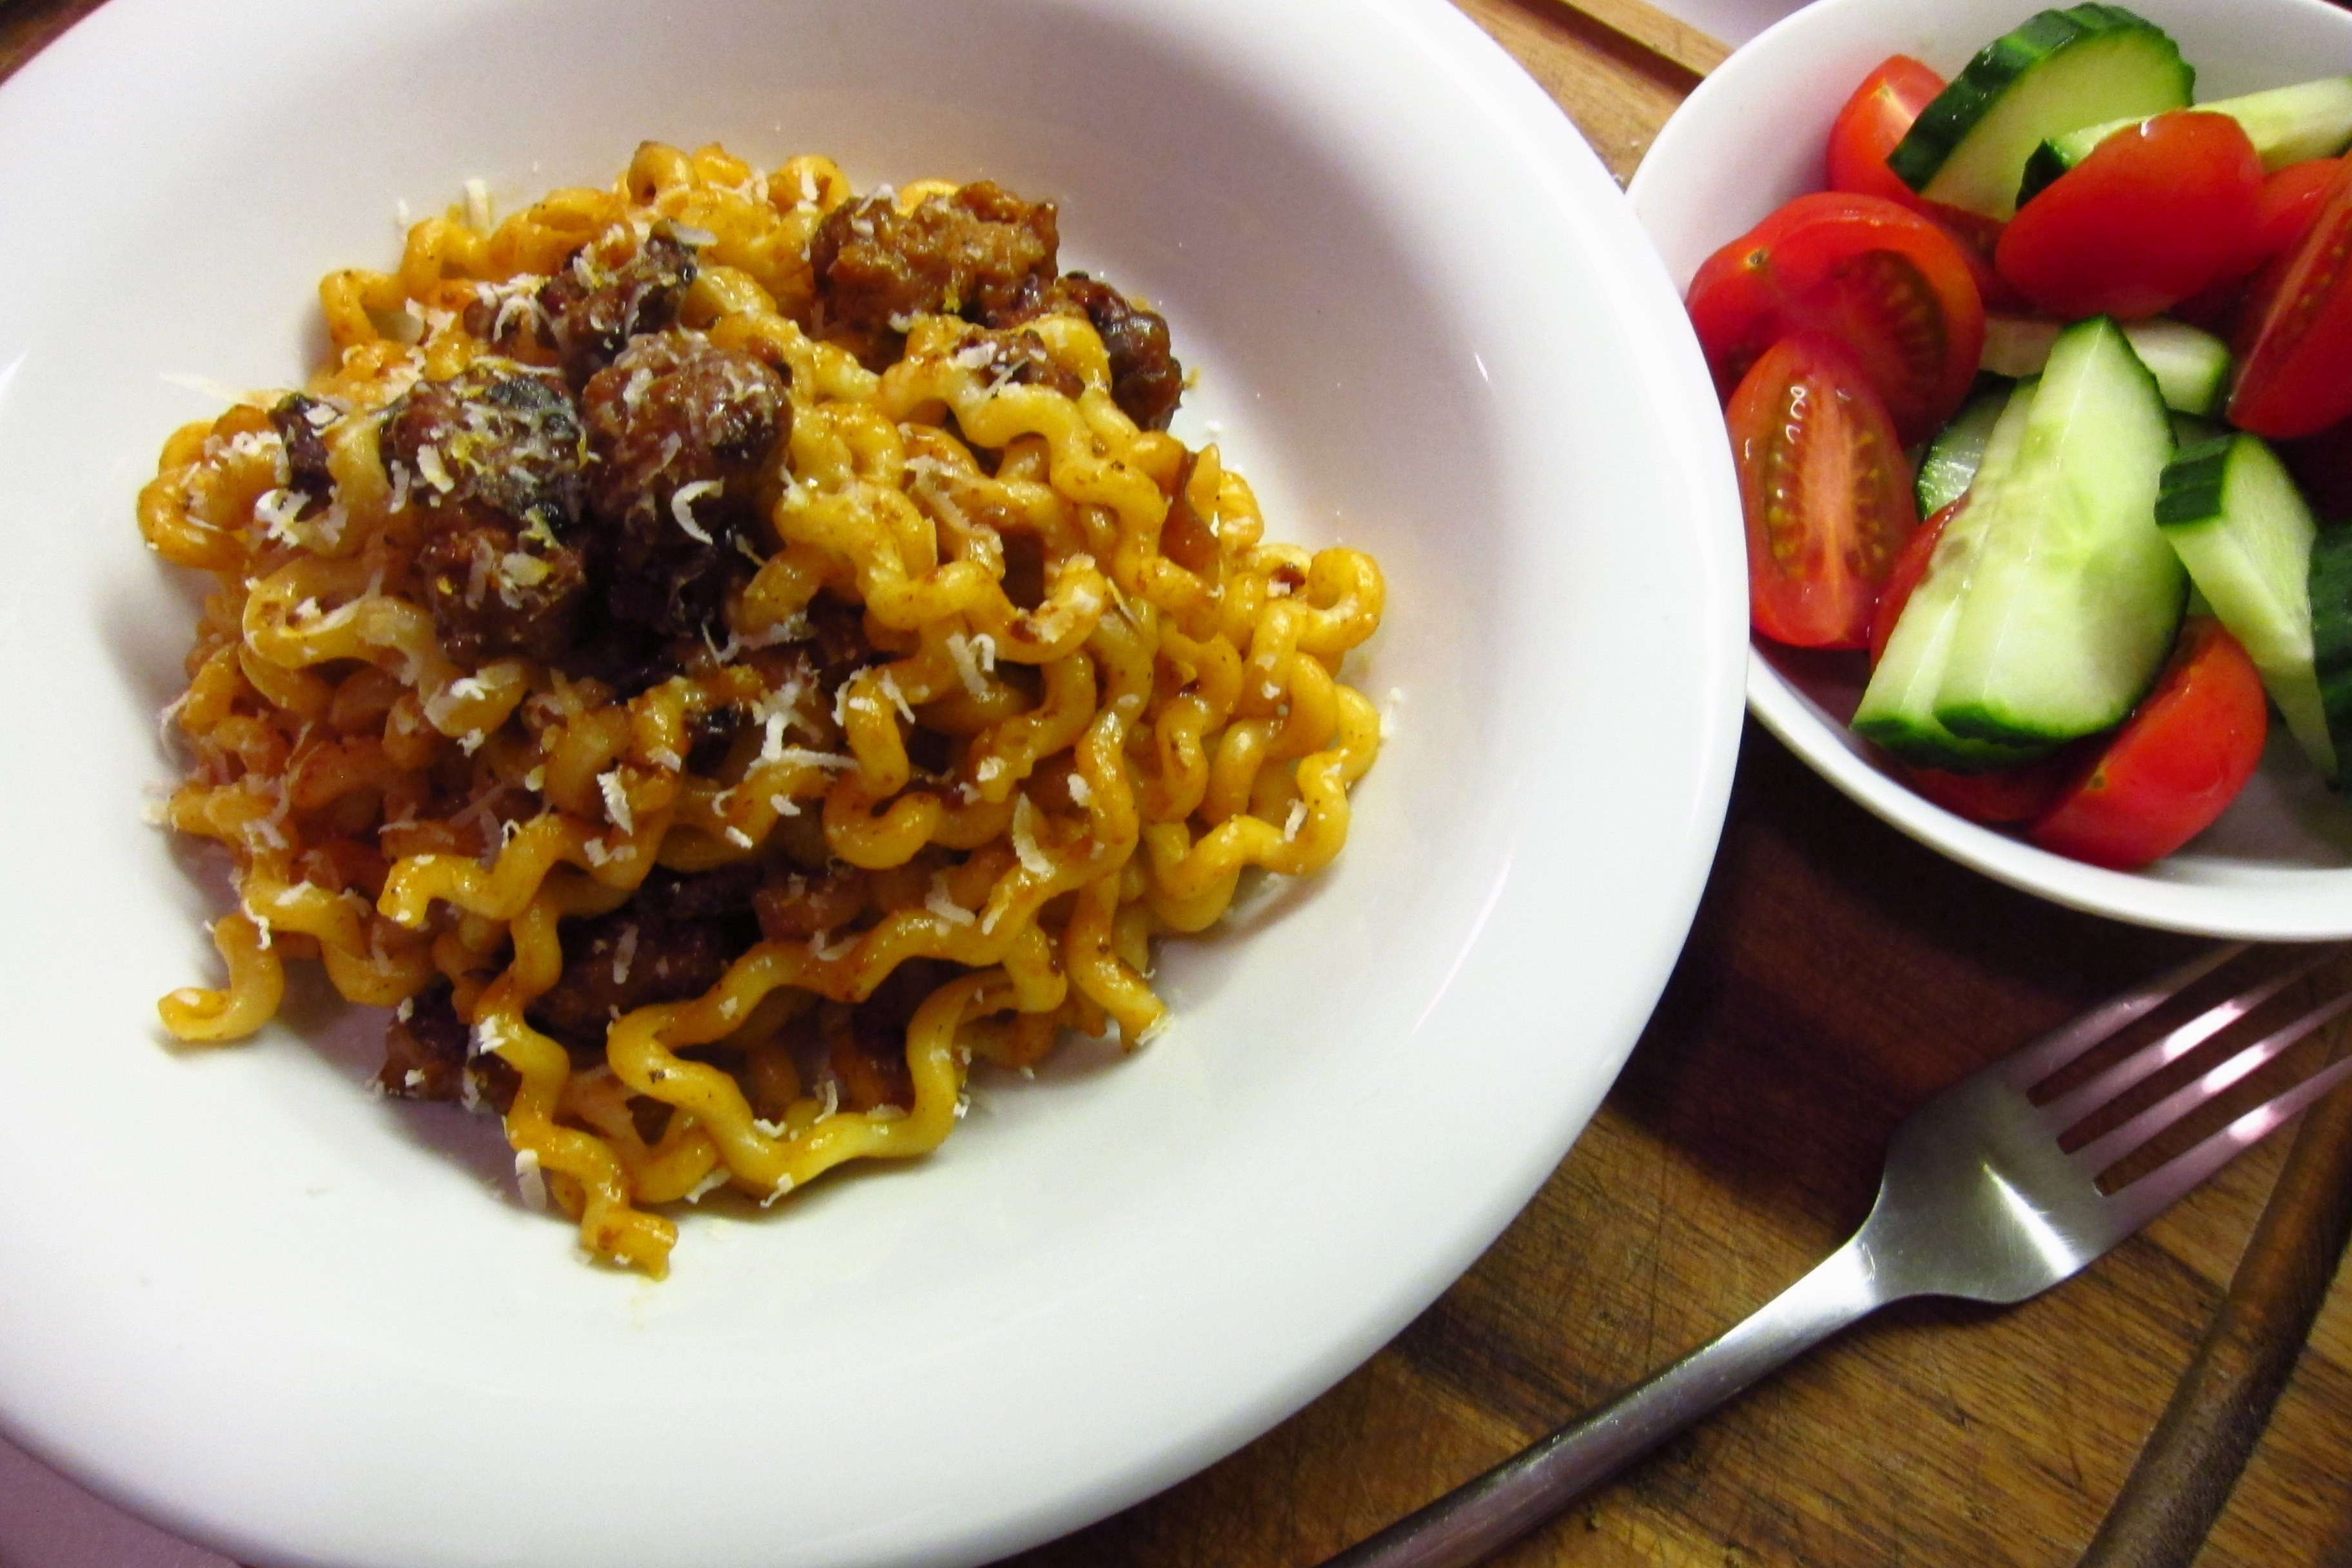 28.Blog_Eataly inspired long fusilli with Italian sausages